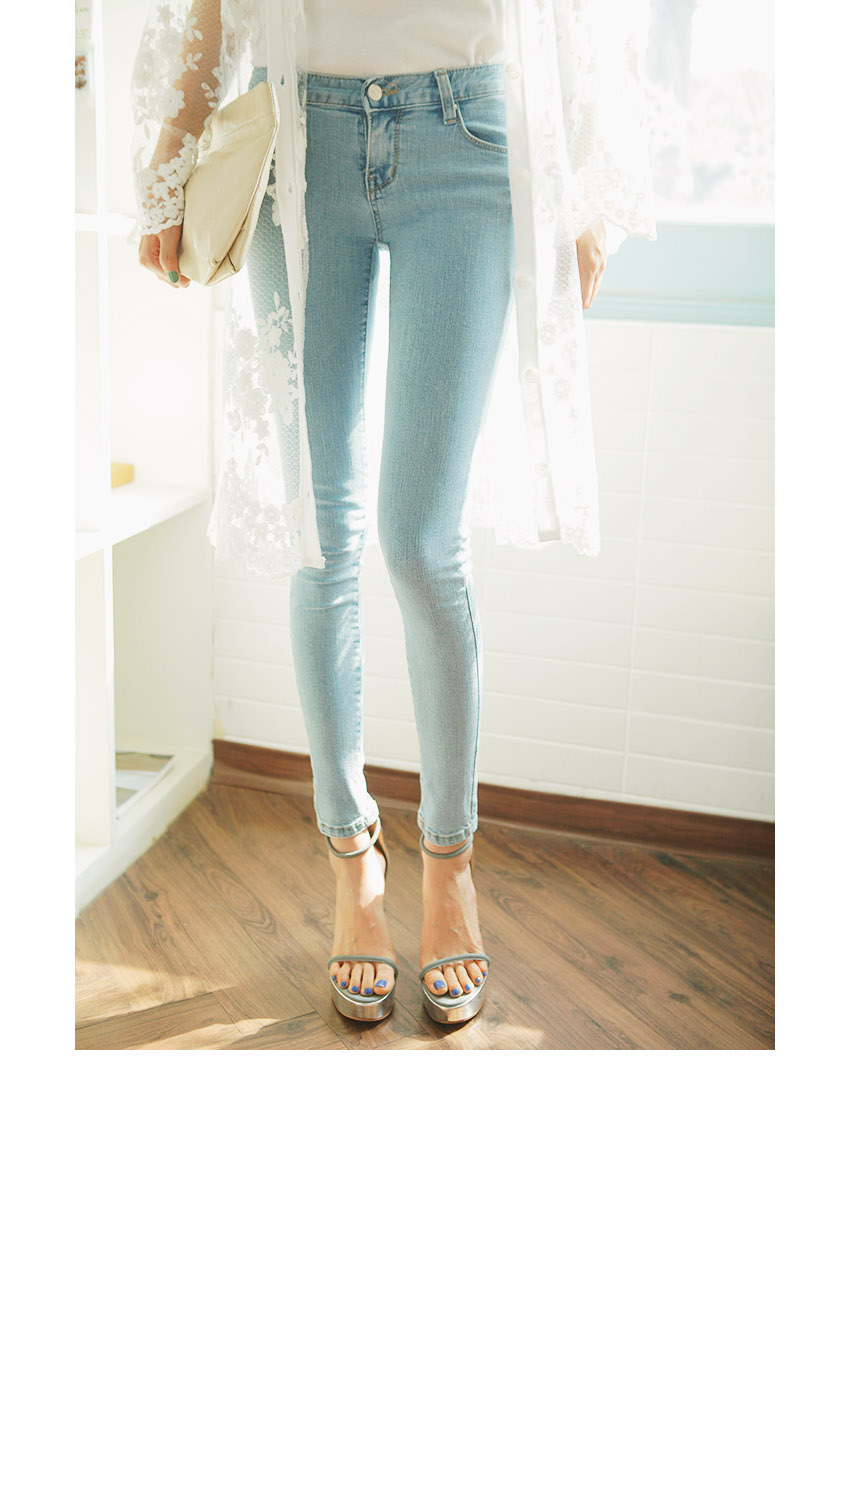 Clean Fit Light Blue Skinny Jeans